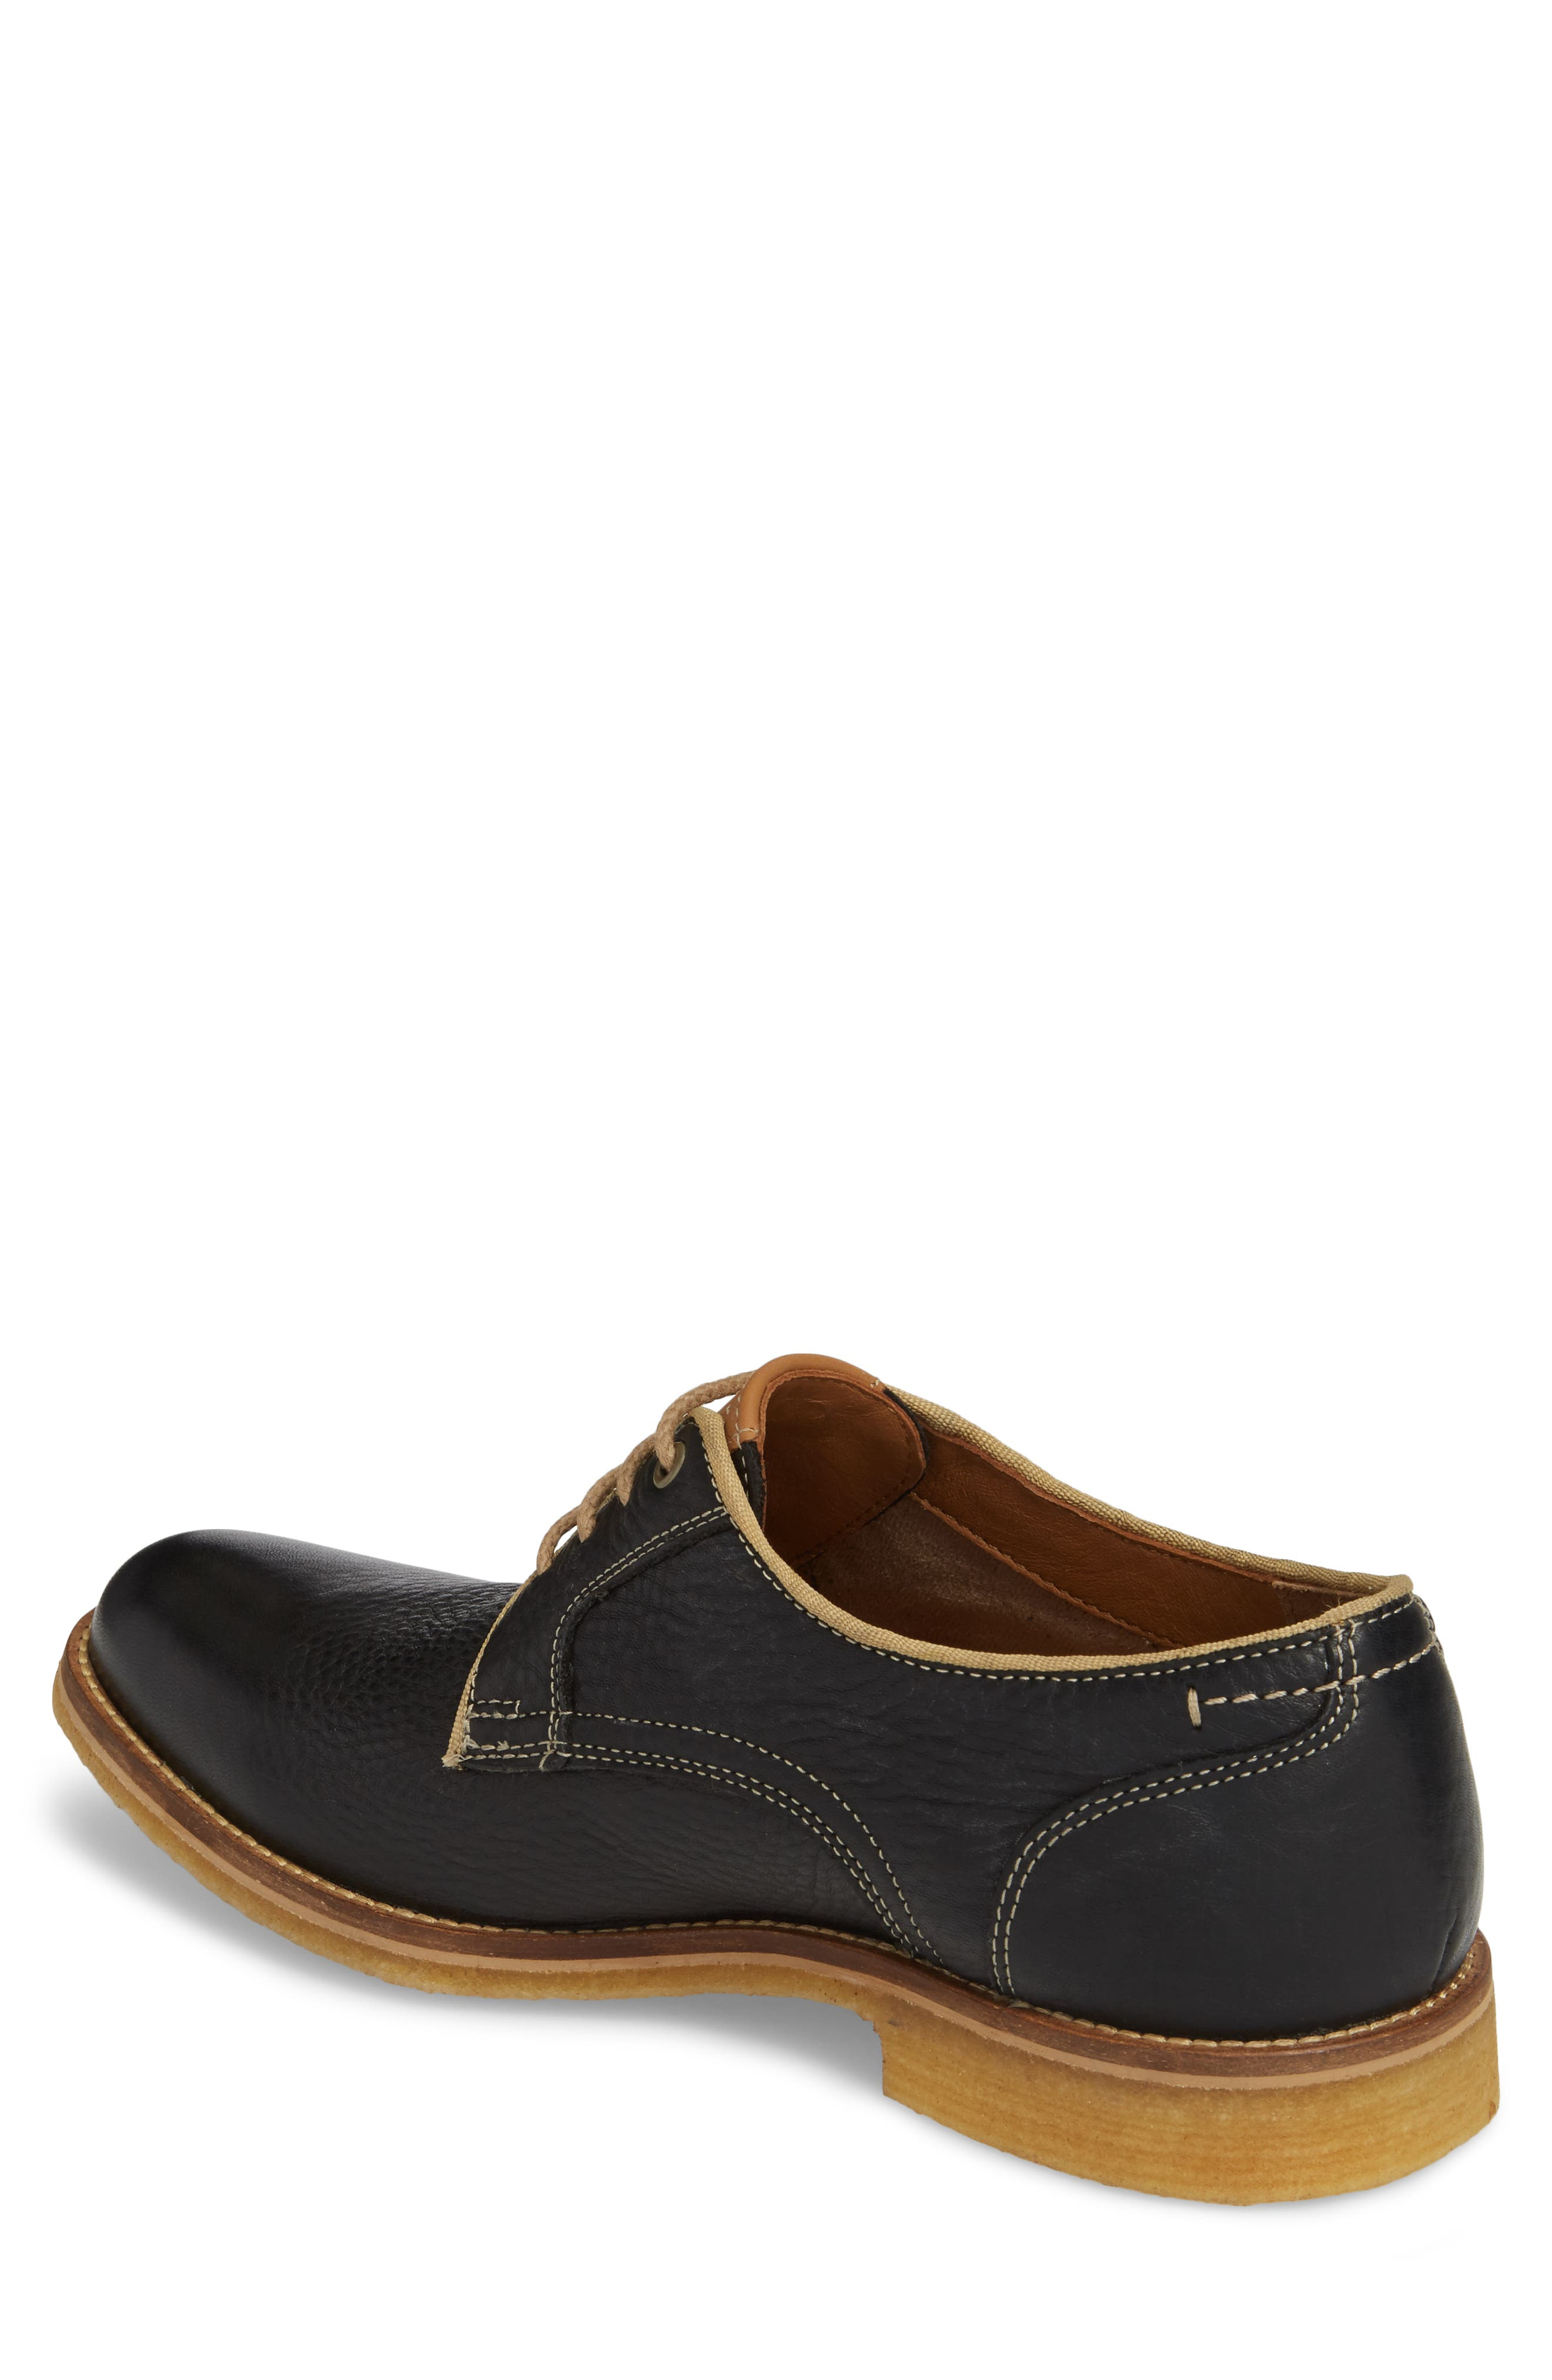 Howell Plain Toe Derby,                             Alternate thumbnail 2, color,                             Black Leather